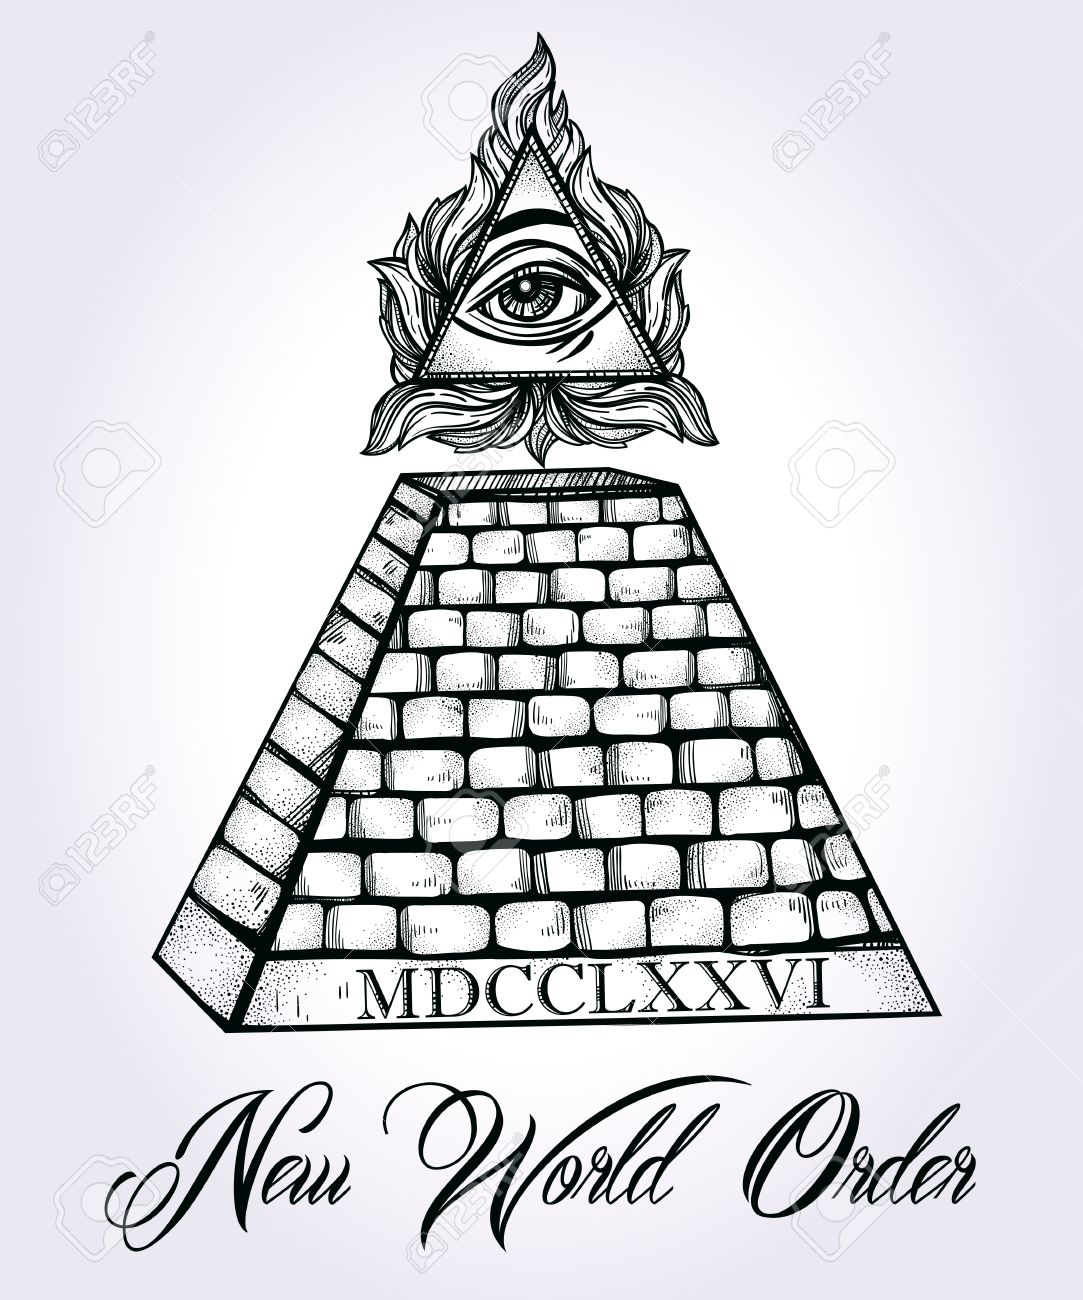 1083x1300 All Seeing Eye Pyramid Symbol. New World Order. Hand Drawn Eye